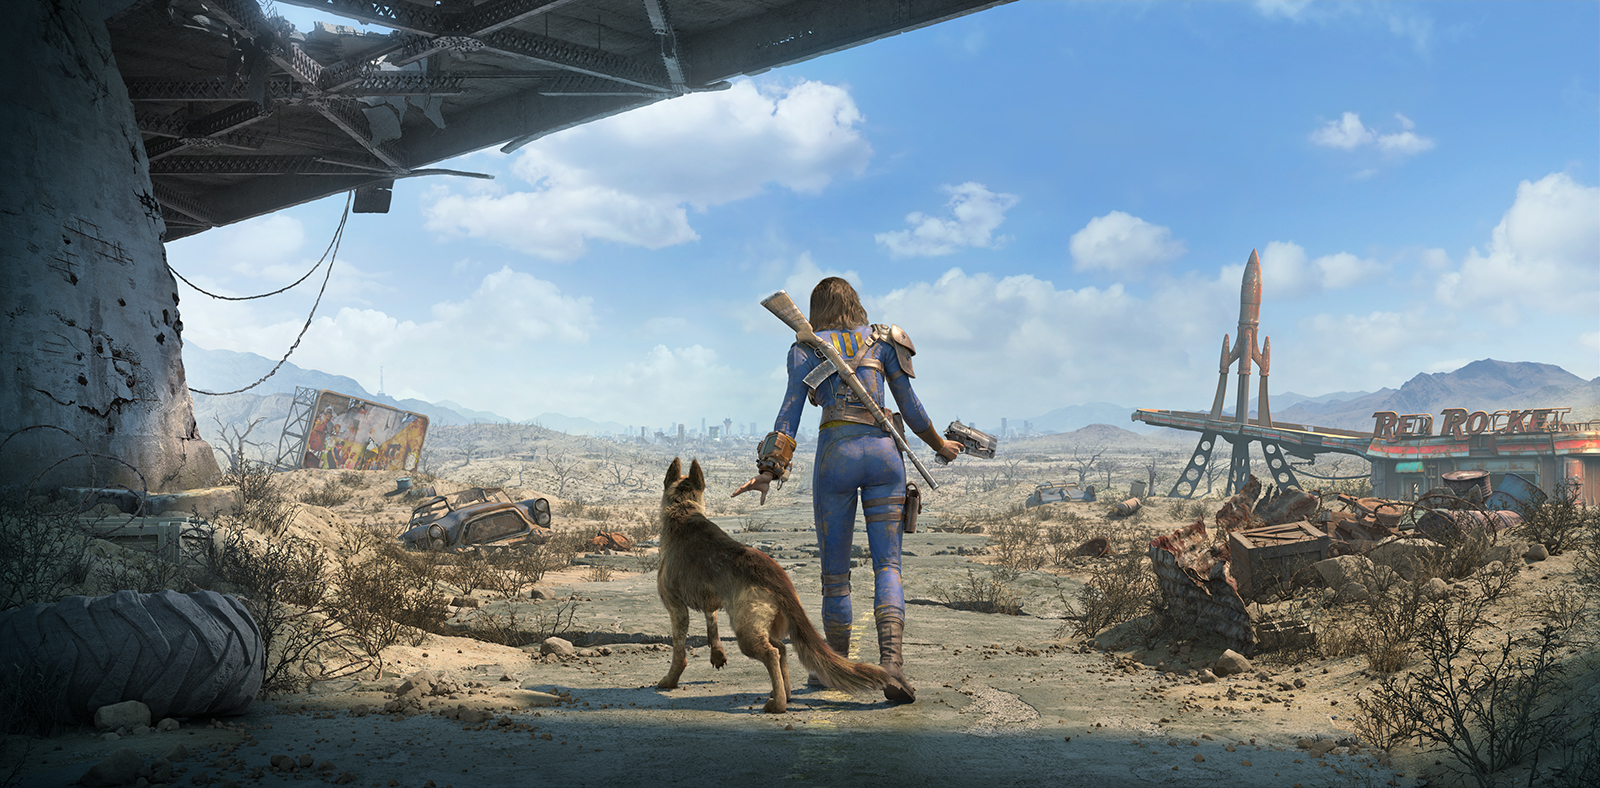 have-a-gander-at-fallout-4-fine-art-prints-148603158926.jpg